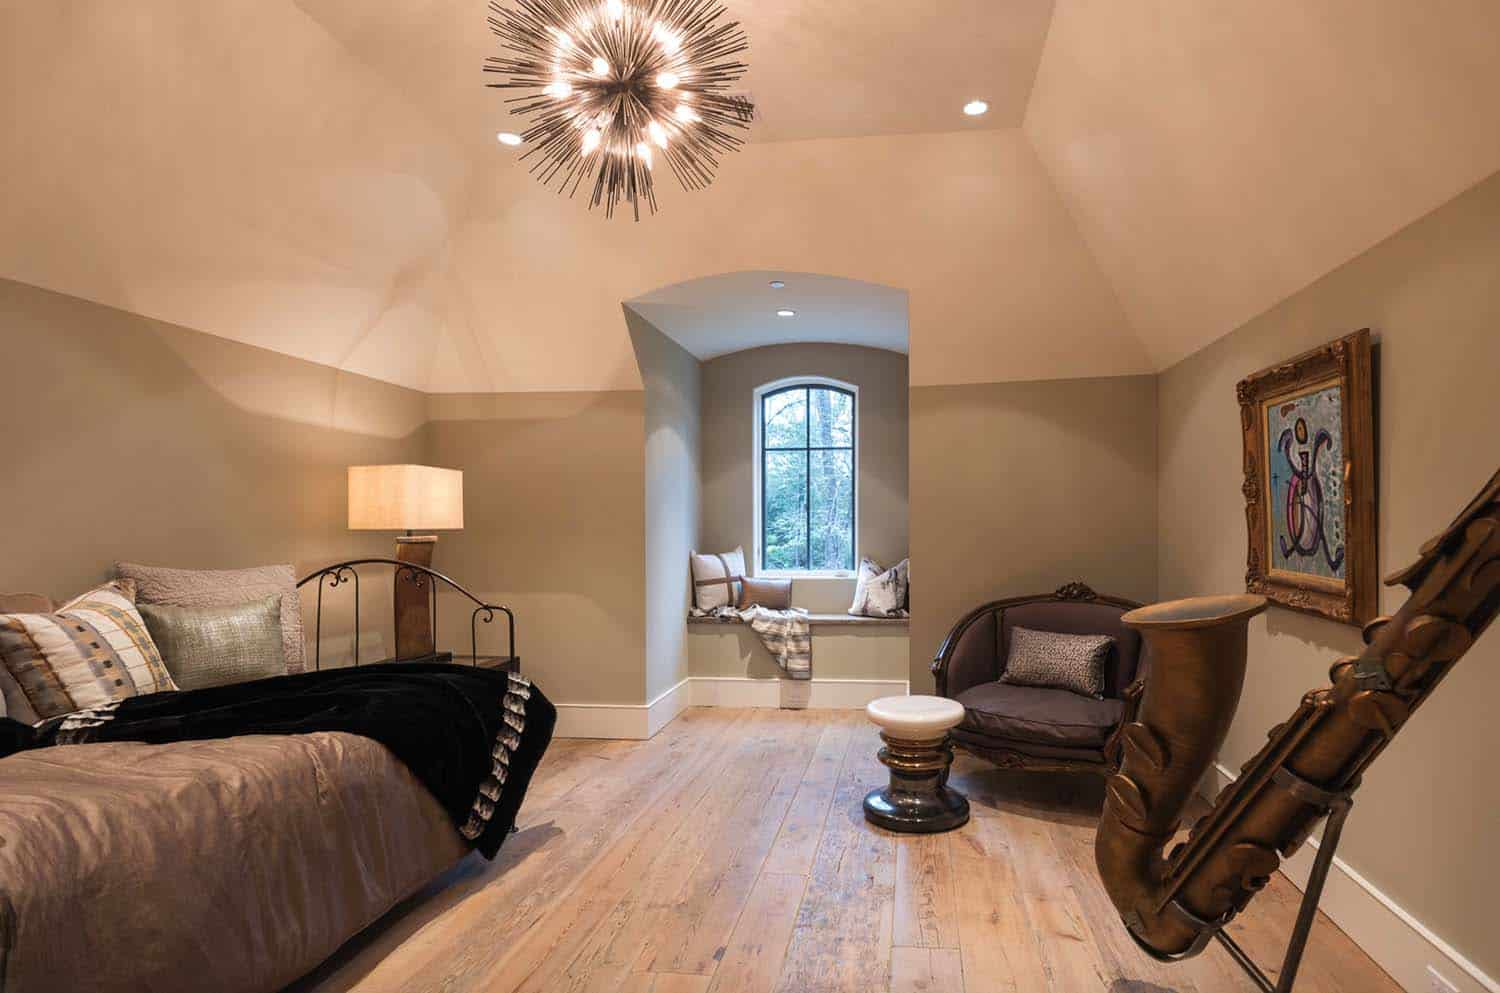 French Normandy Chateau-Bankston May Associates-29-1 Kindesign